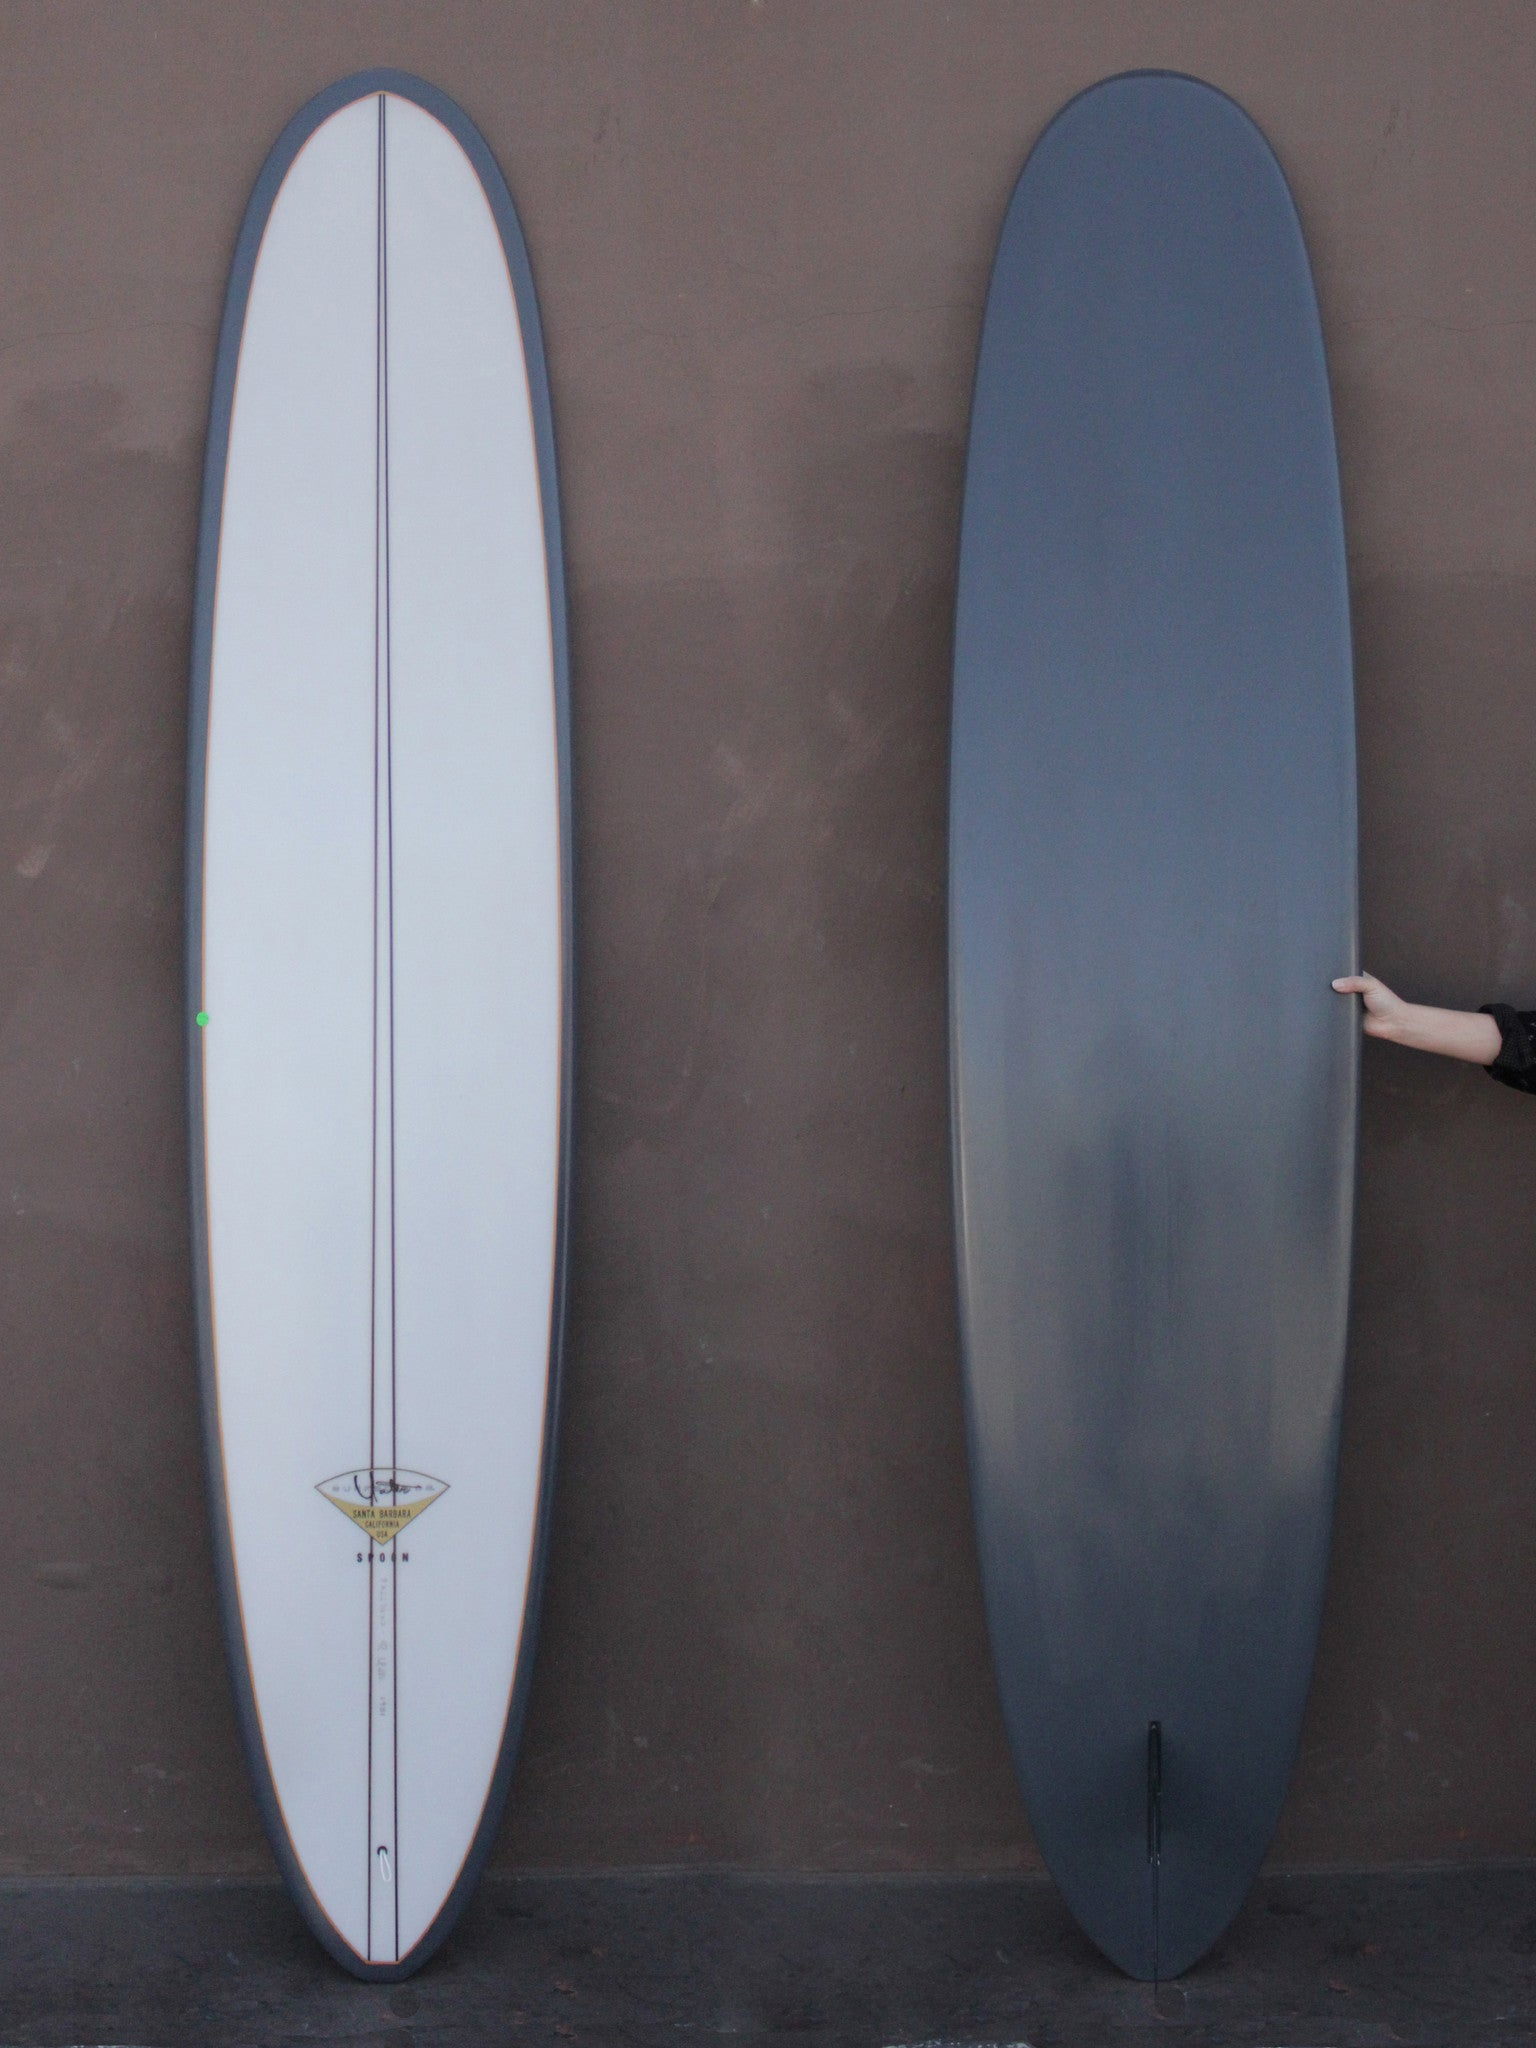 9'0 Yater Spoon - Satin